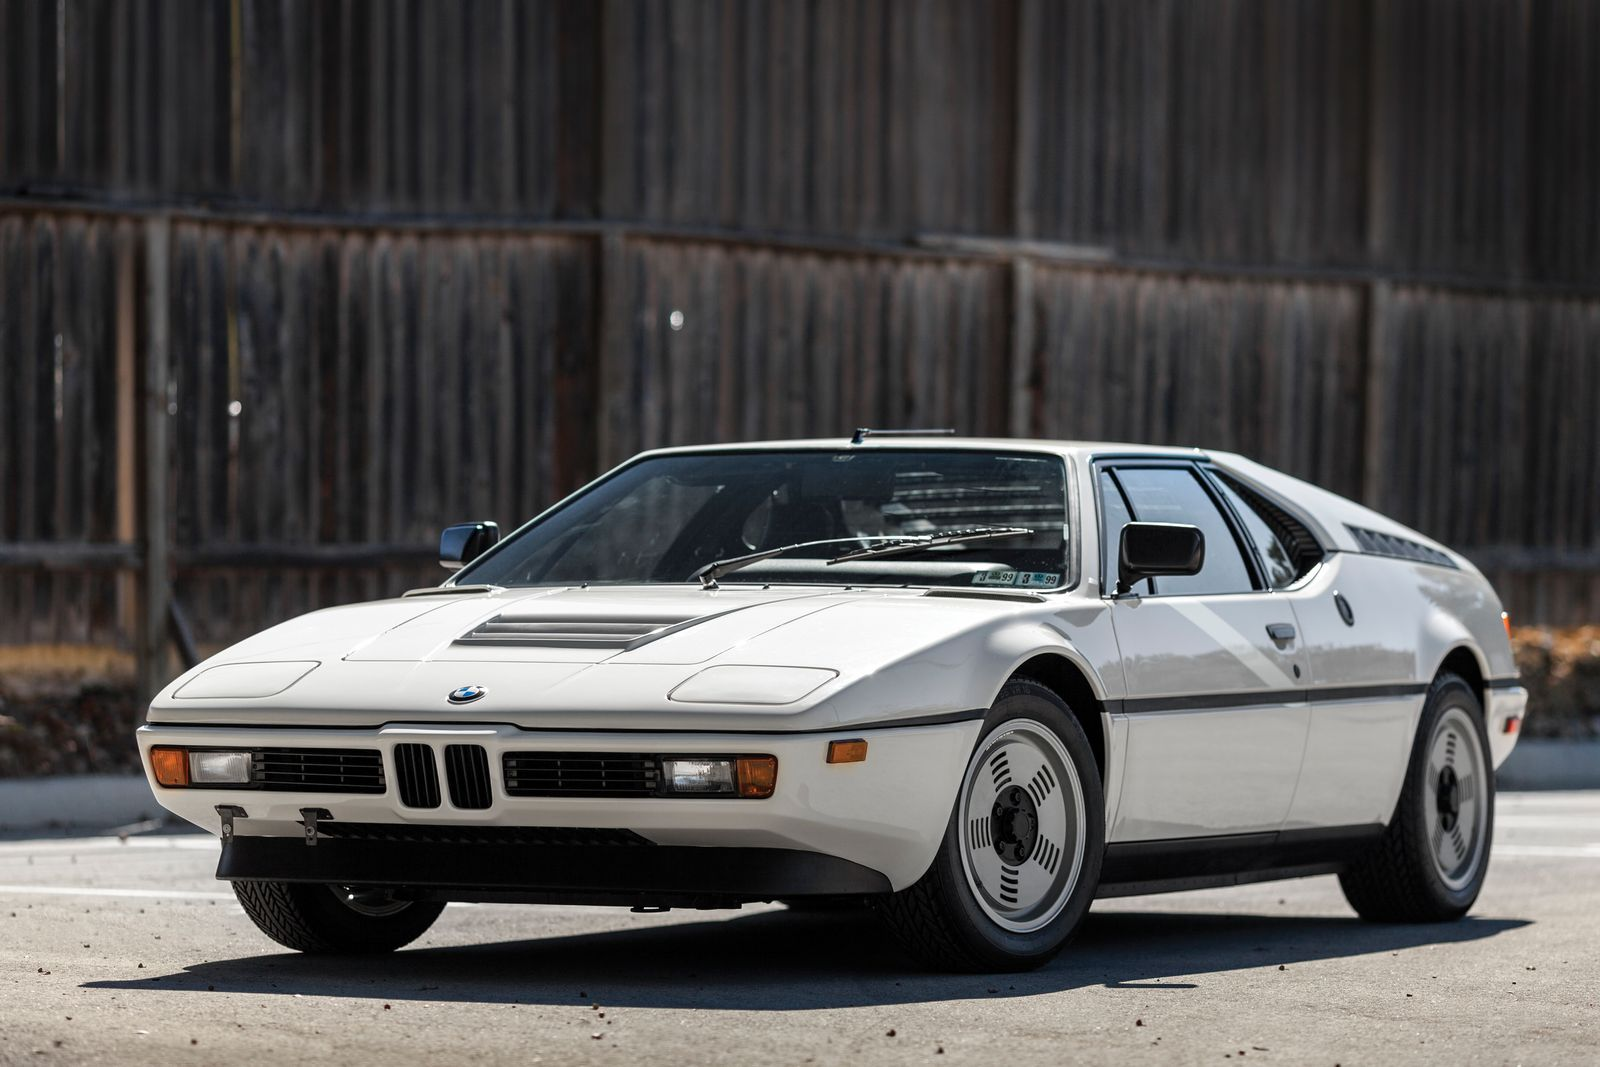 All Classic Cars Nz 1981 Bmw M1 For Sale For Usd 800 000